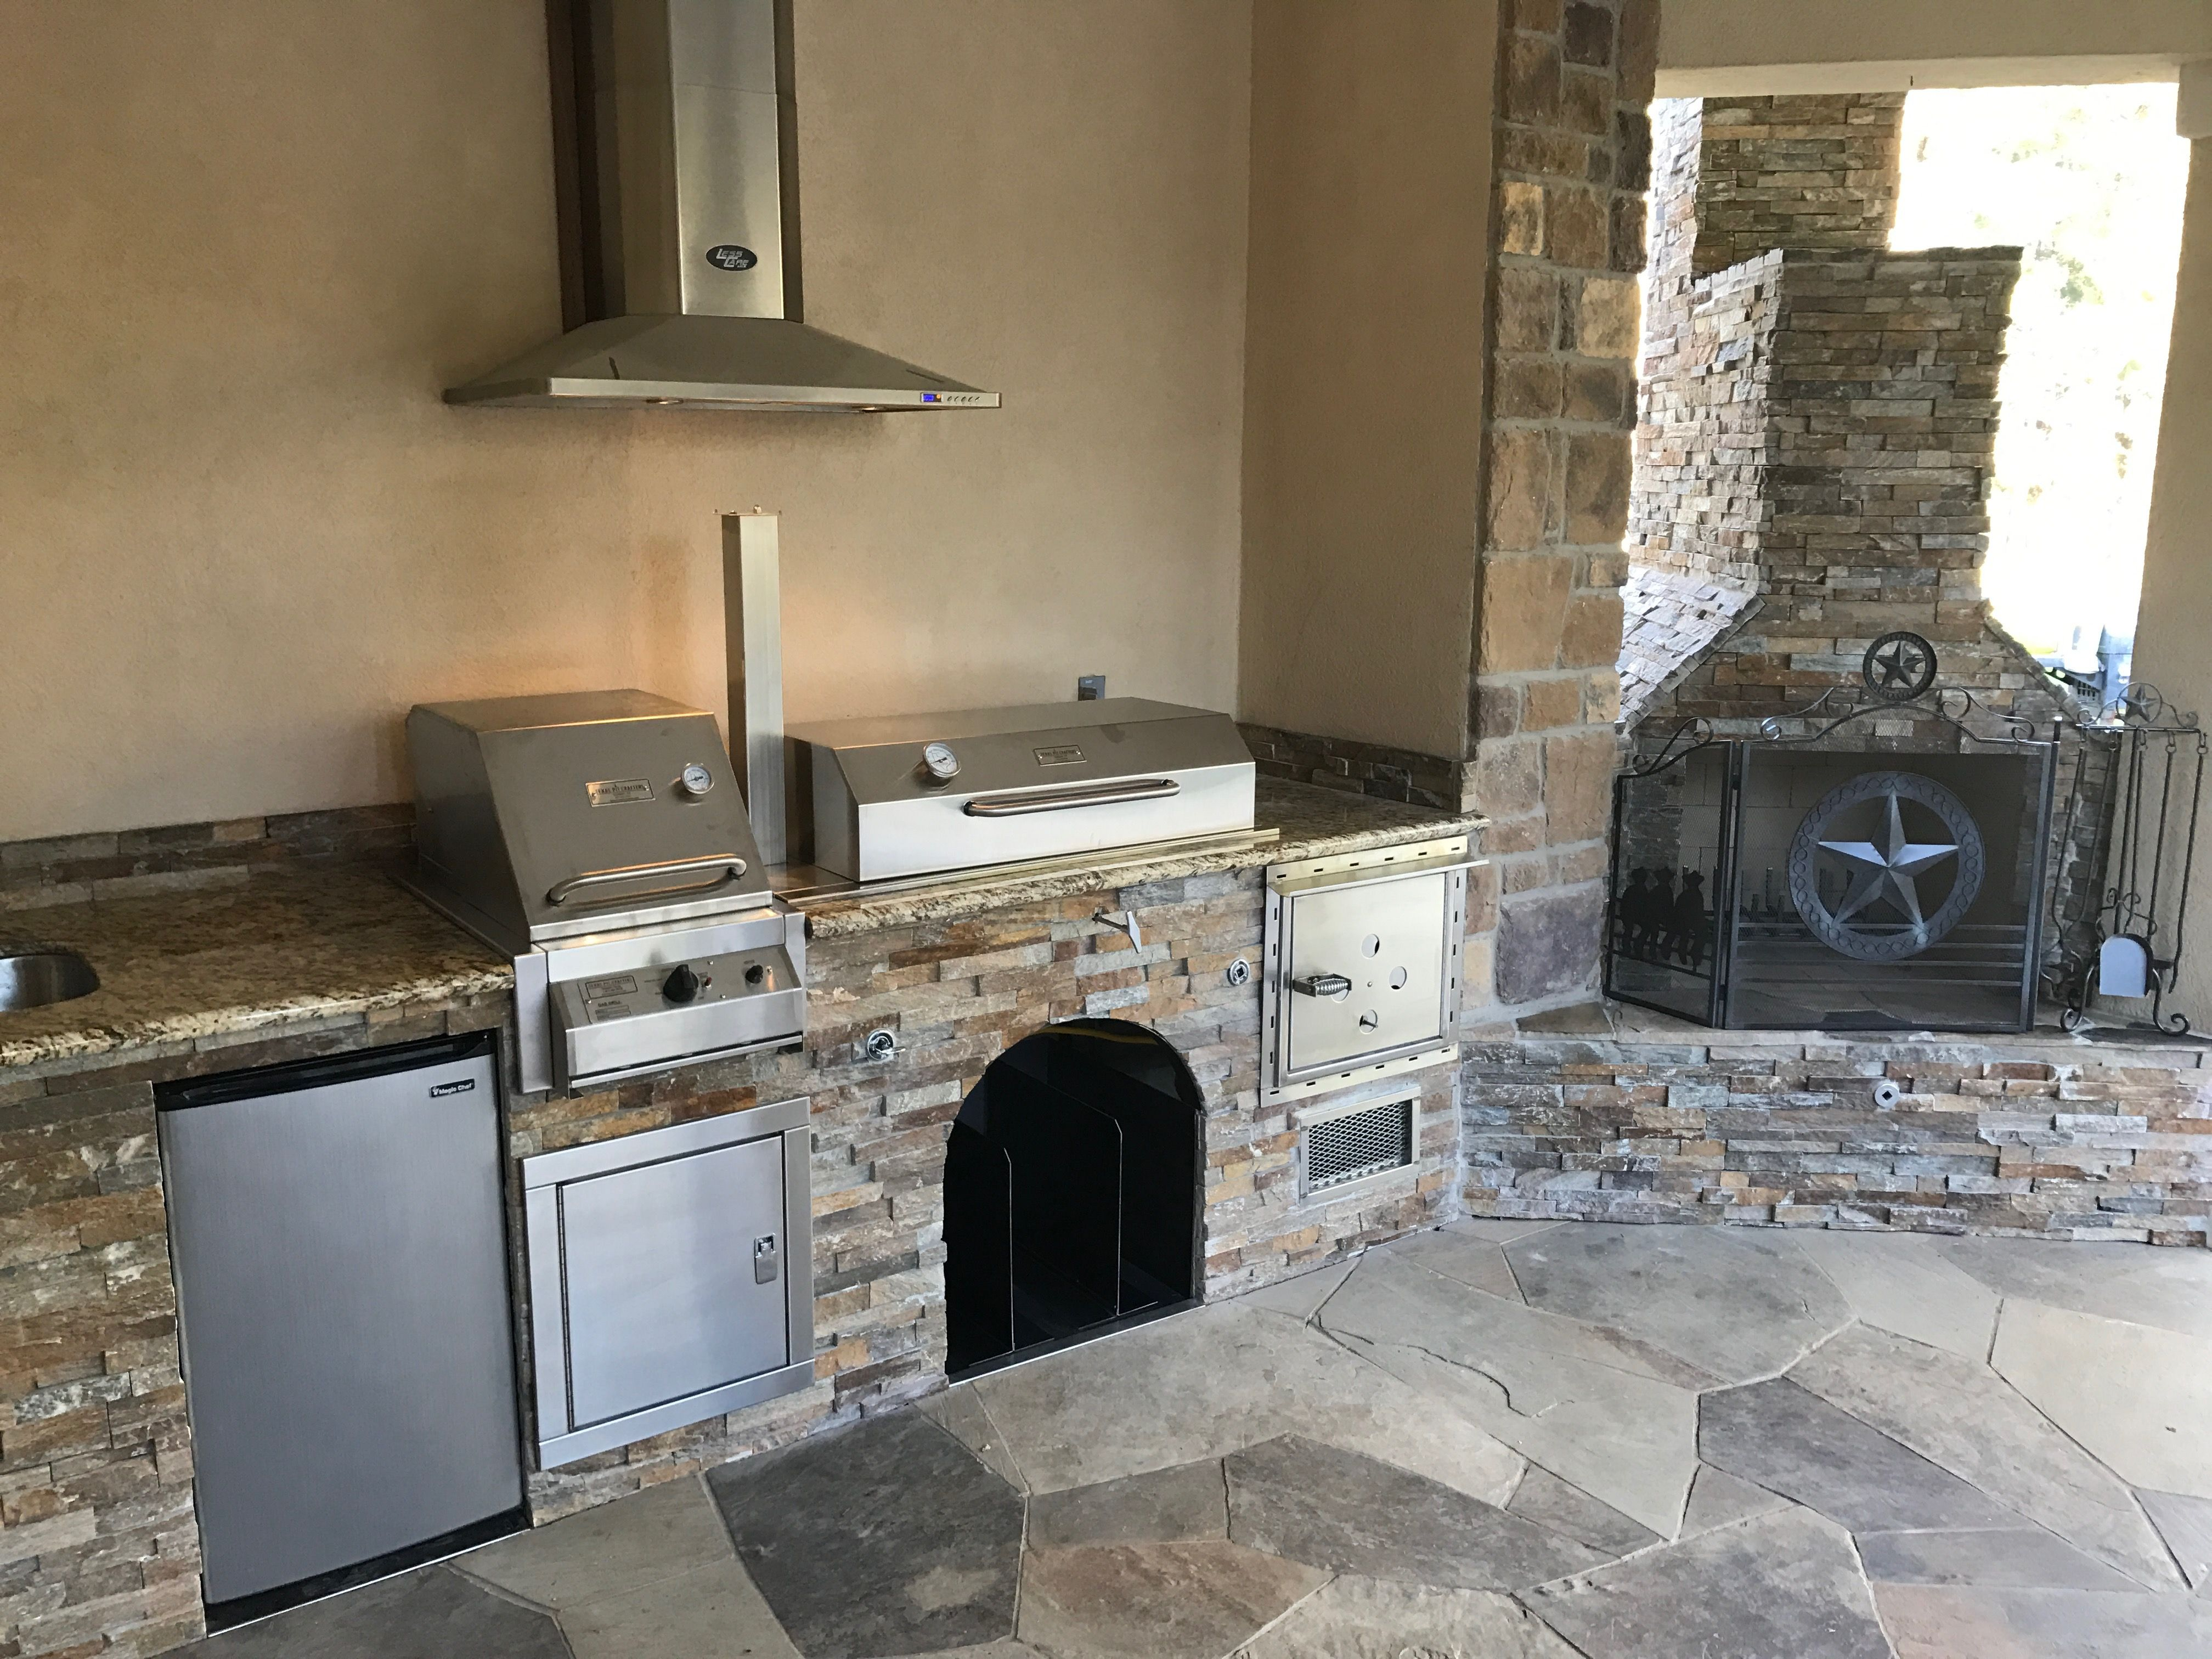 Gorgeous Outdoor Kitchen Designed And Handcrafted By Texas Pit Crafters Equipped With A Built In Smoker A Barbecue Pit Outdoor Kitchen Design Outdoor Kitchen